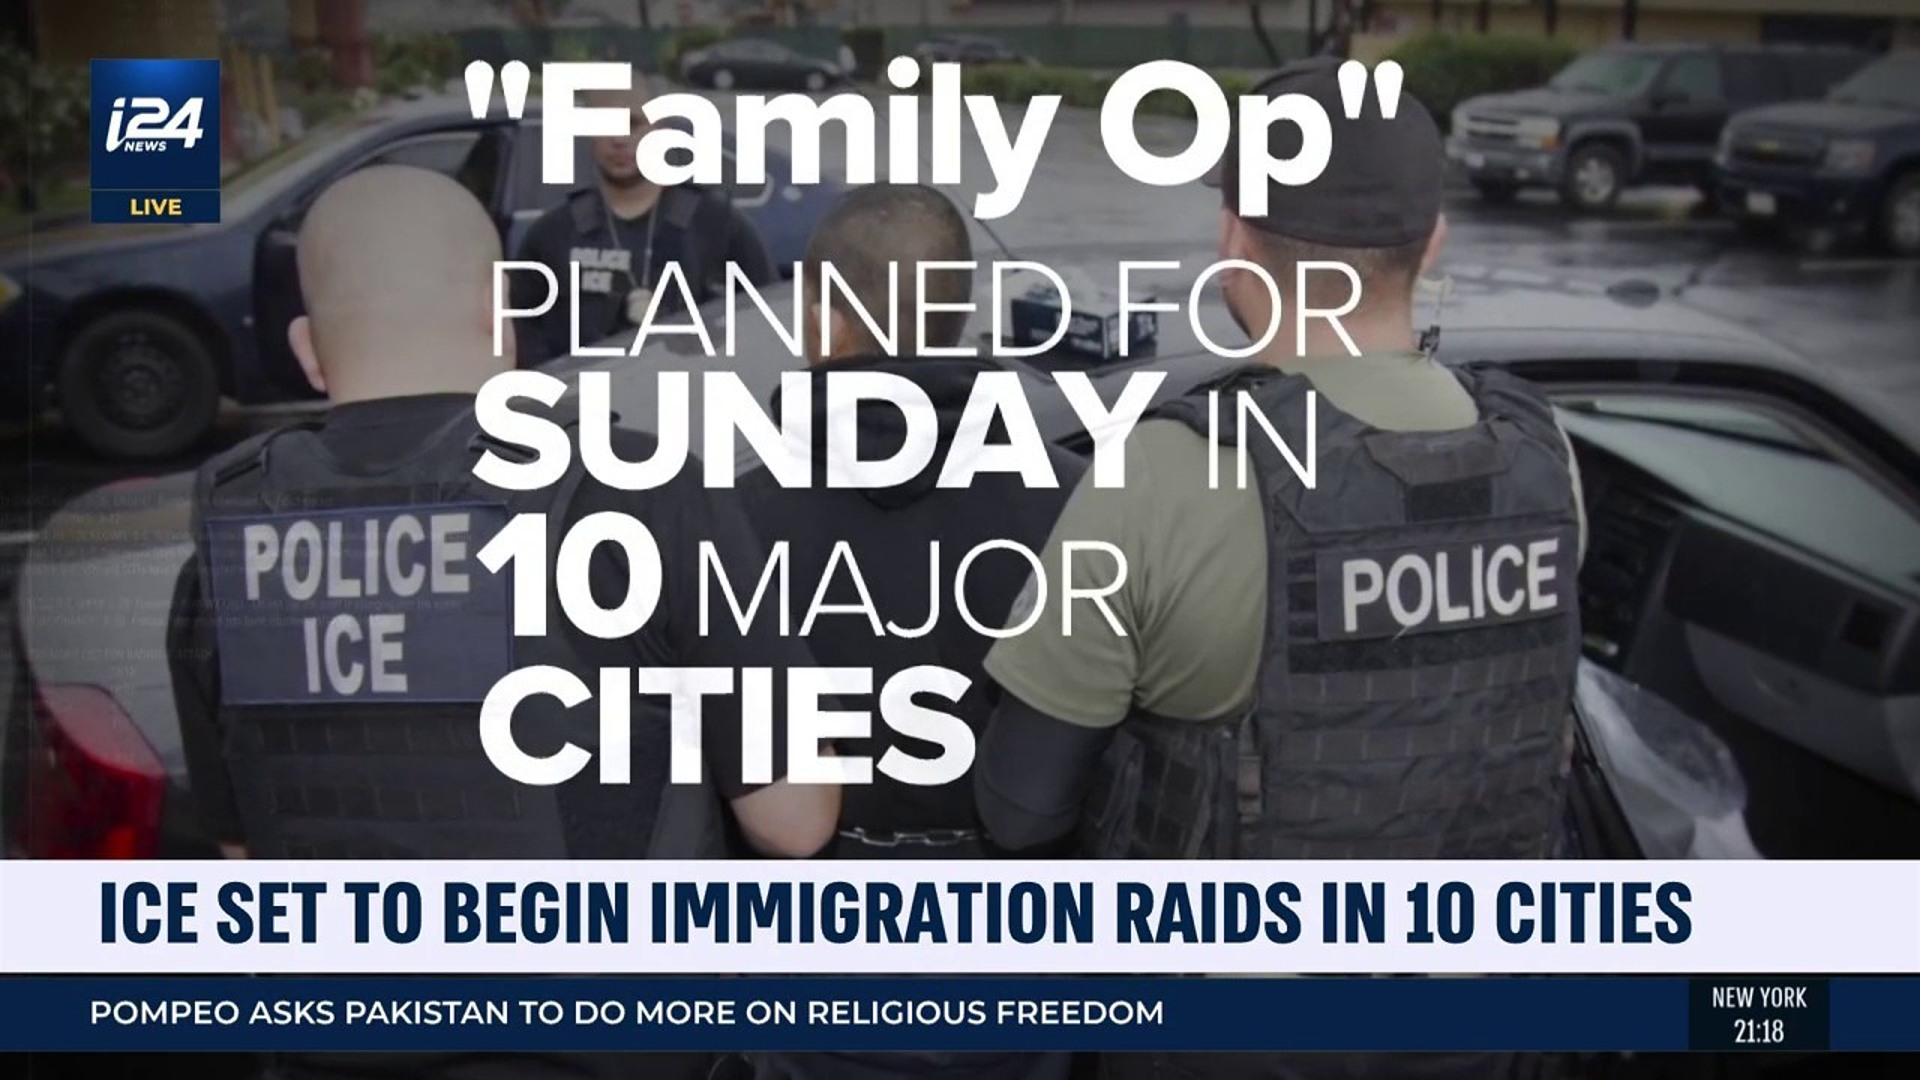 ICE set to begin immigration raids in major US cities | June